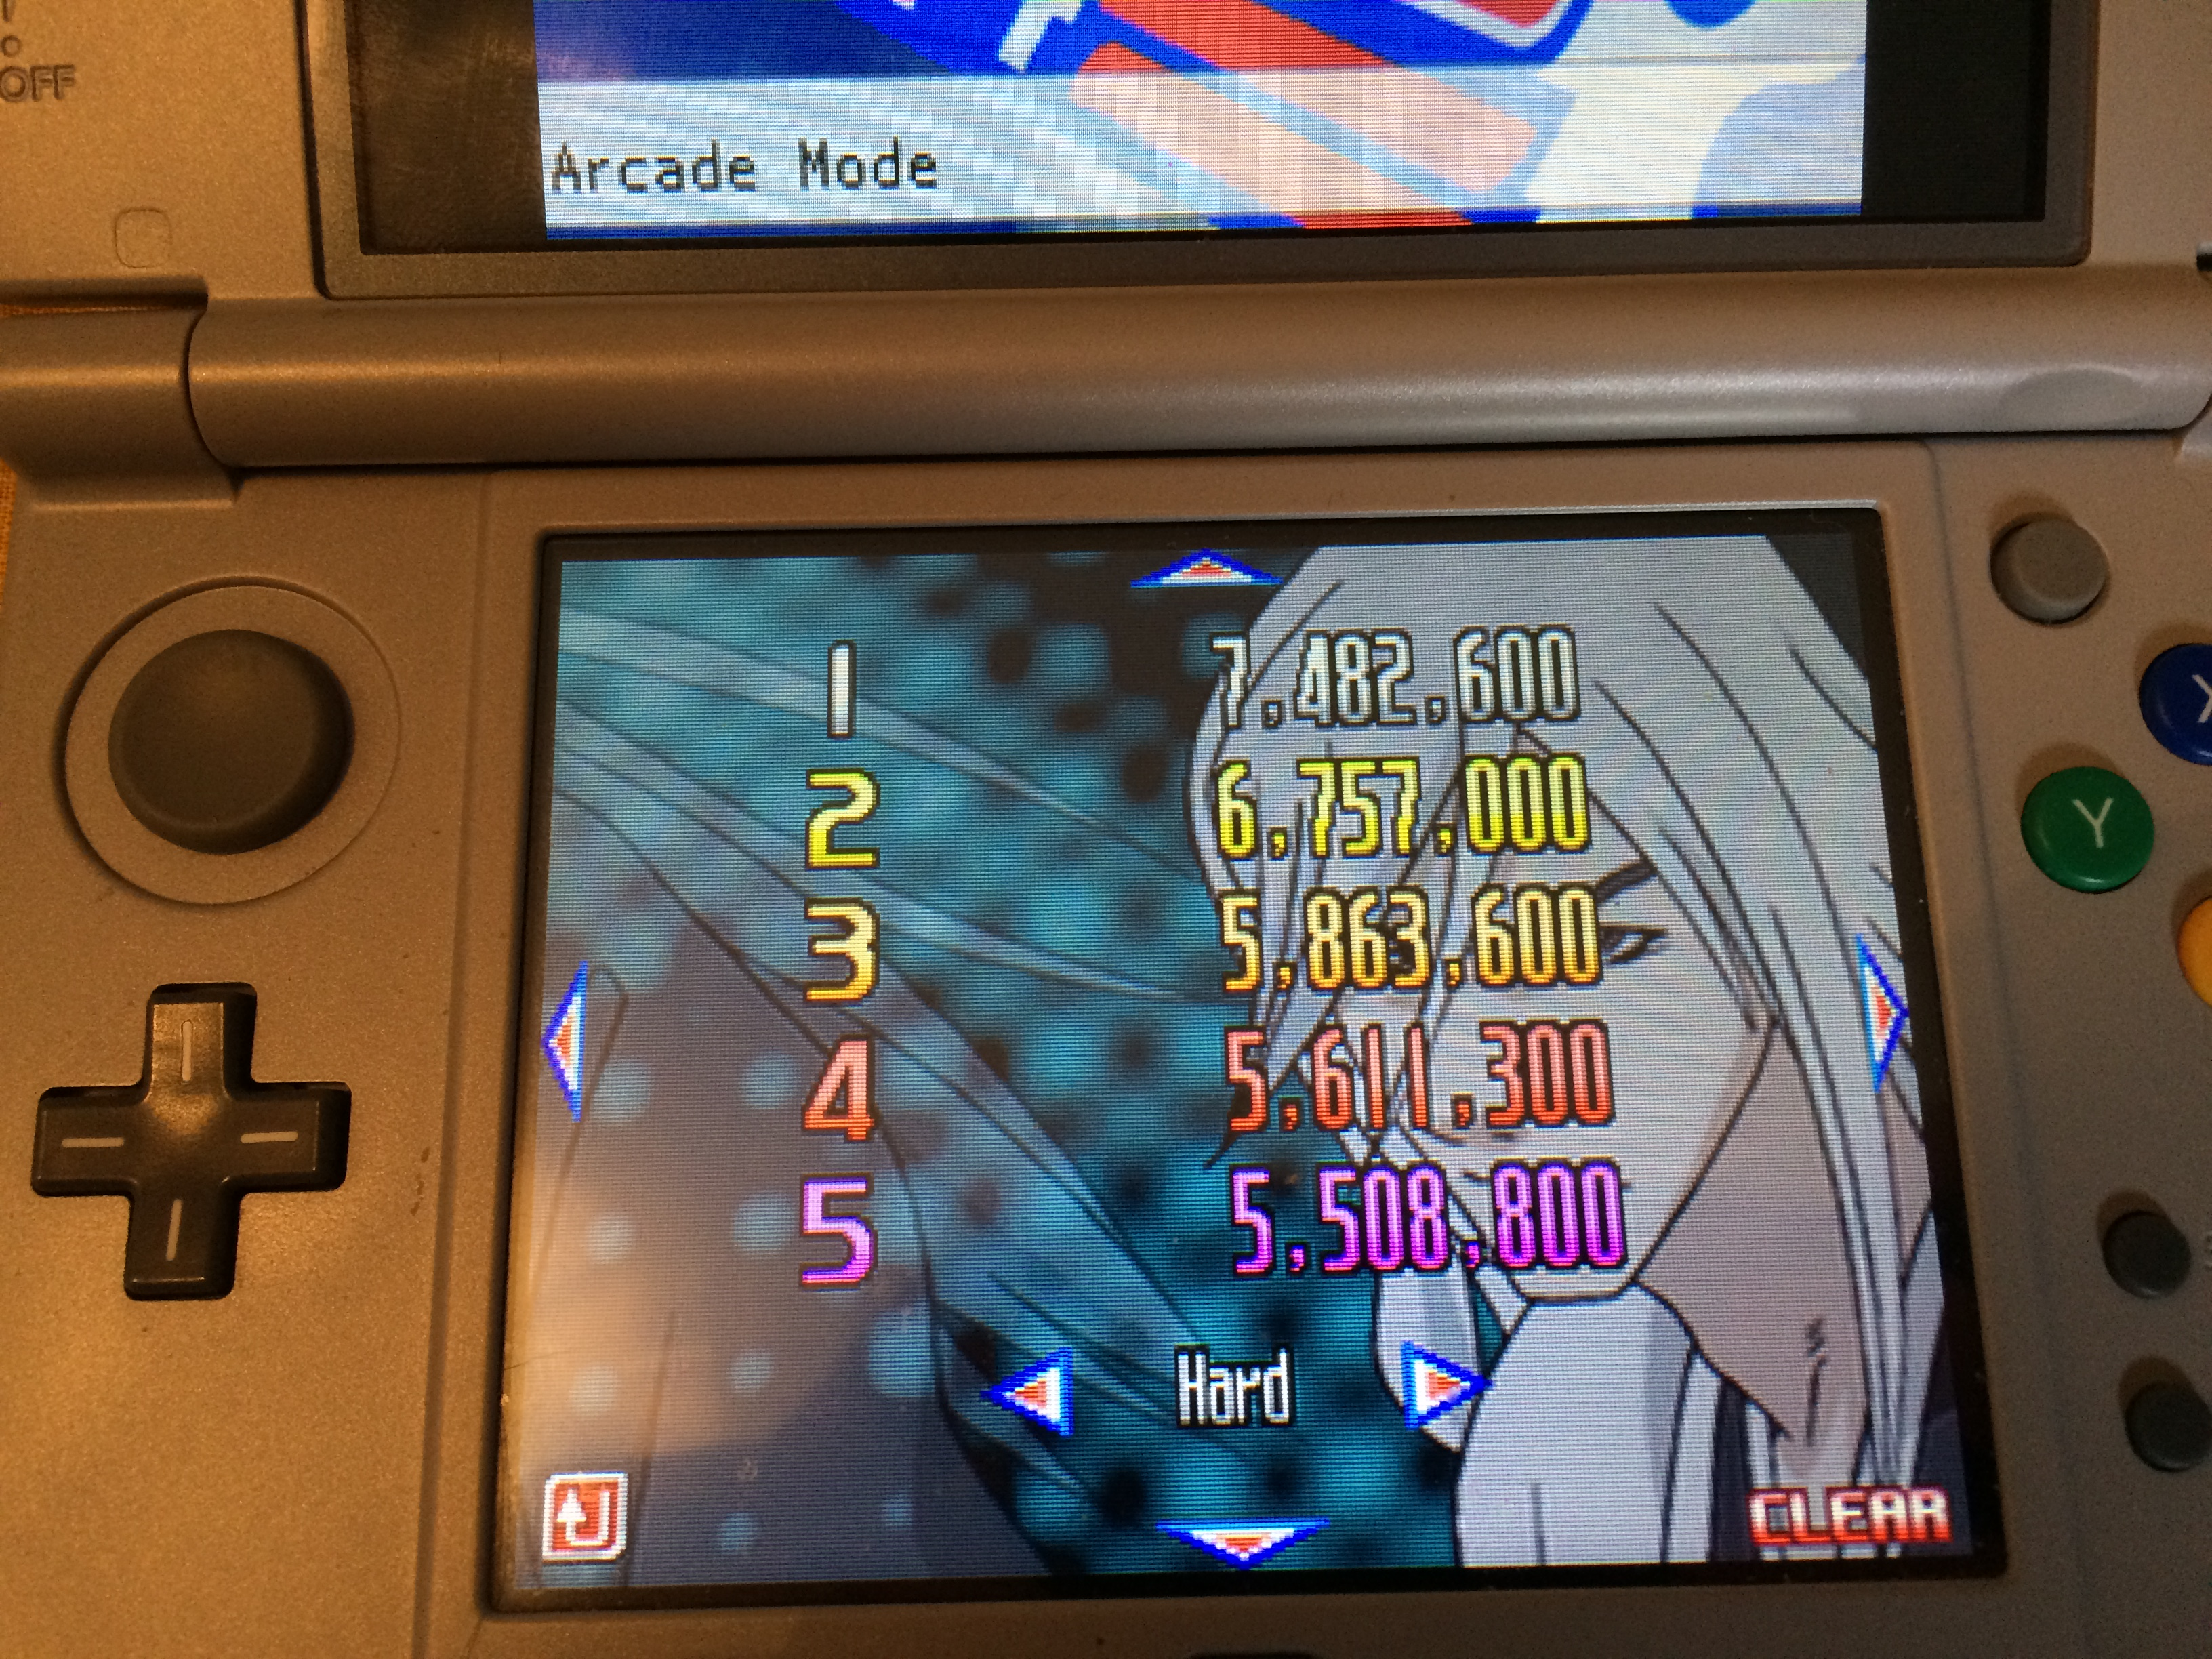 Bleach: The Blade Of Fate: Arcade Mode: Ukitake [Hard] 7,482,600 points